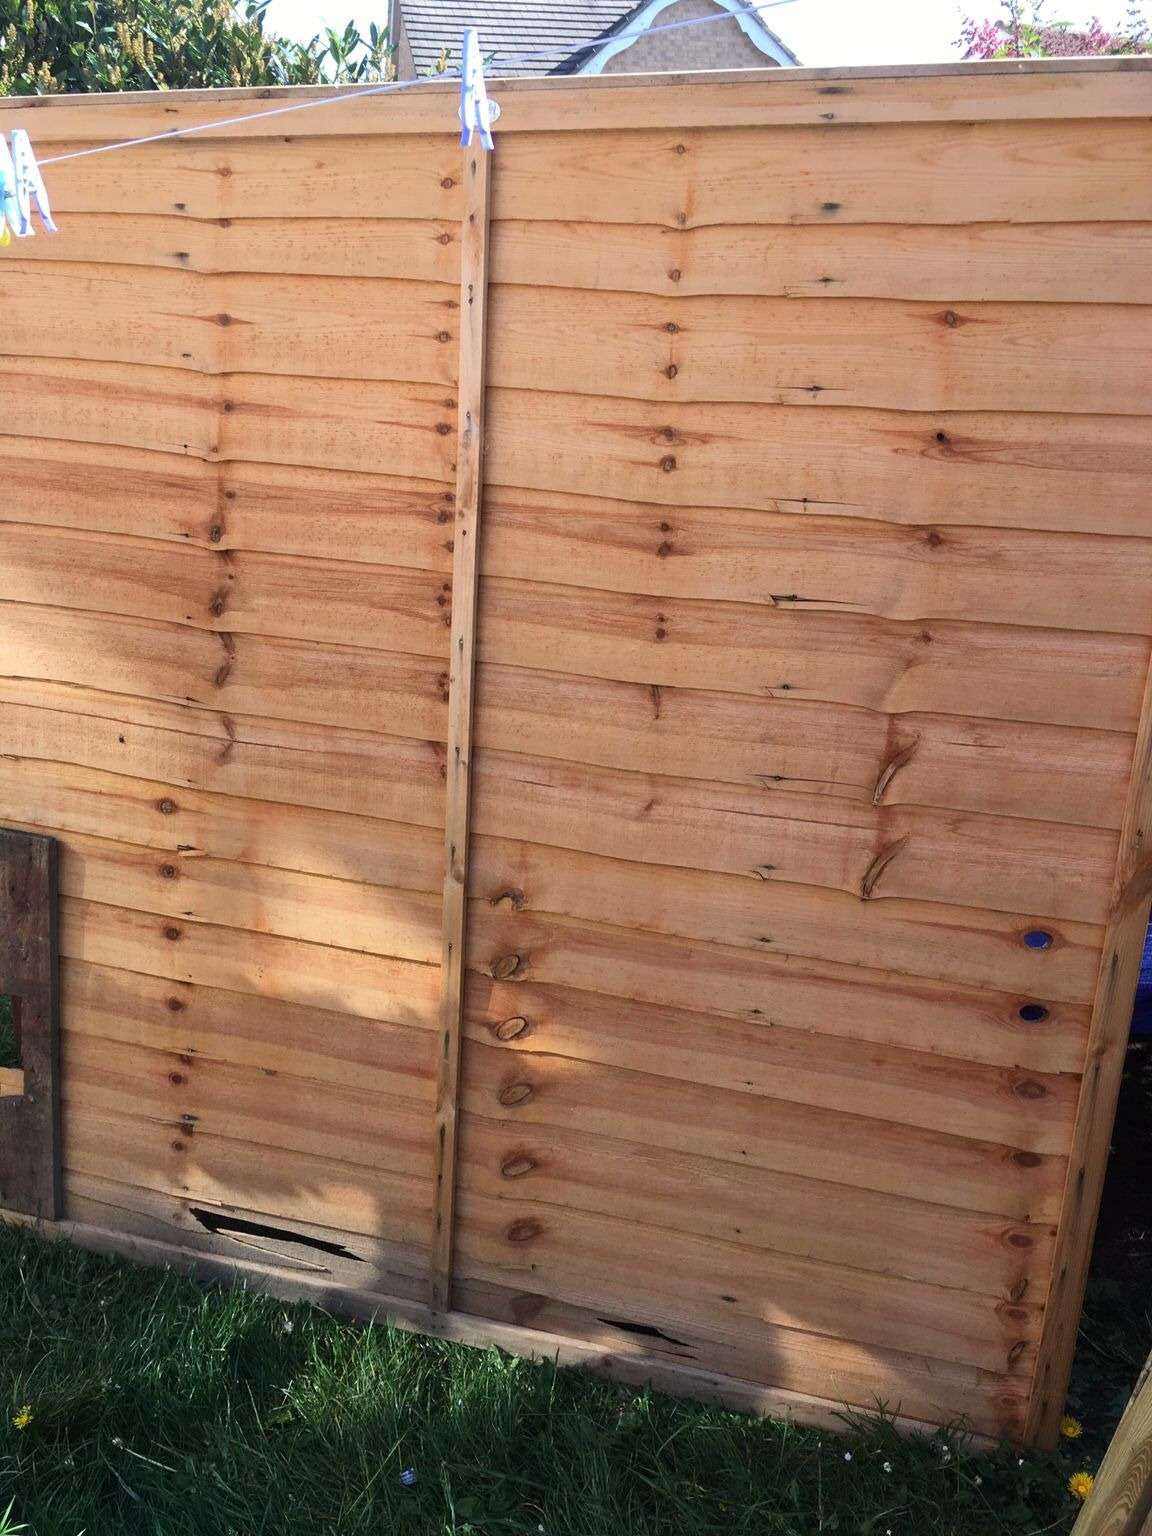 Modified Panel Fence Best Of Fencing 6ft Panels and 2 Posts